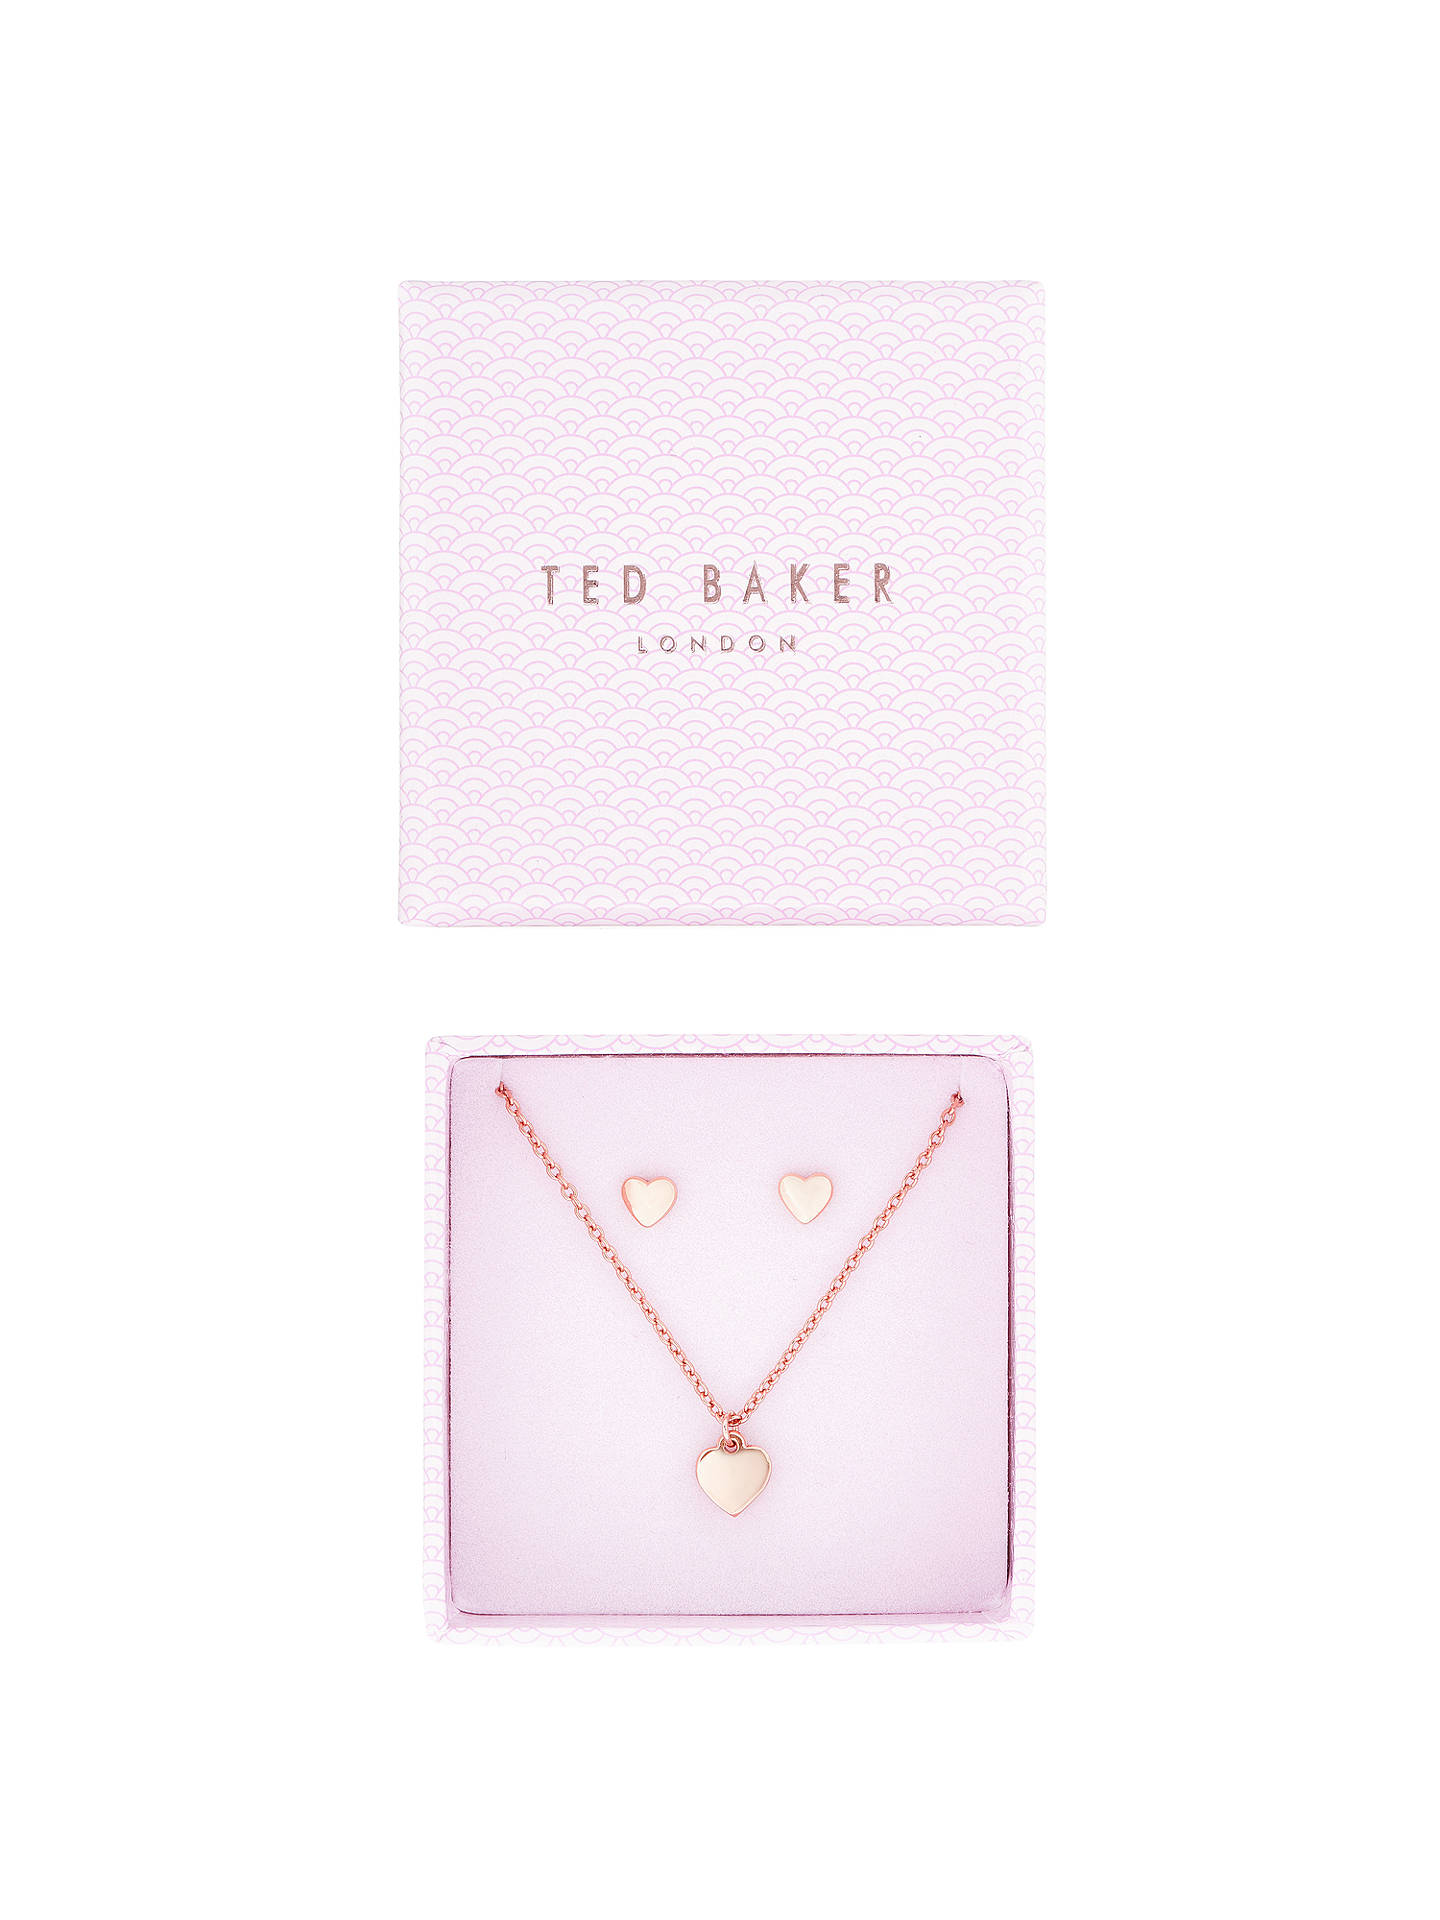 Ted Baker Hara Harly Sweetheart Pendant Necklace And Stud Earrings Box Jewellery Set Rose Gold At John Lewis Partners